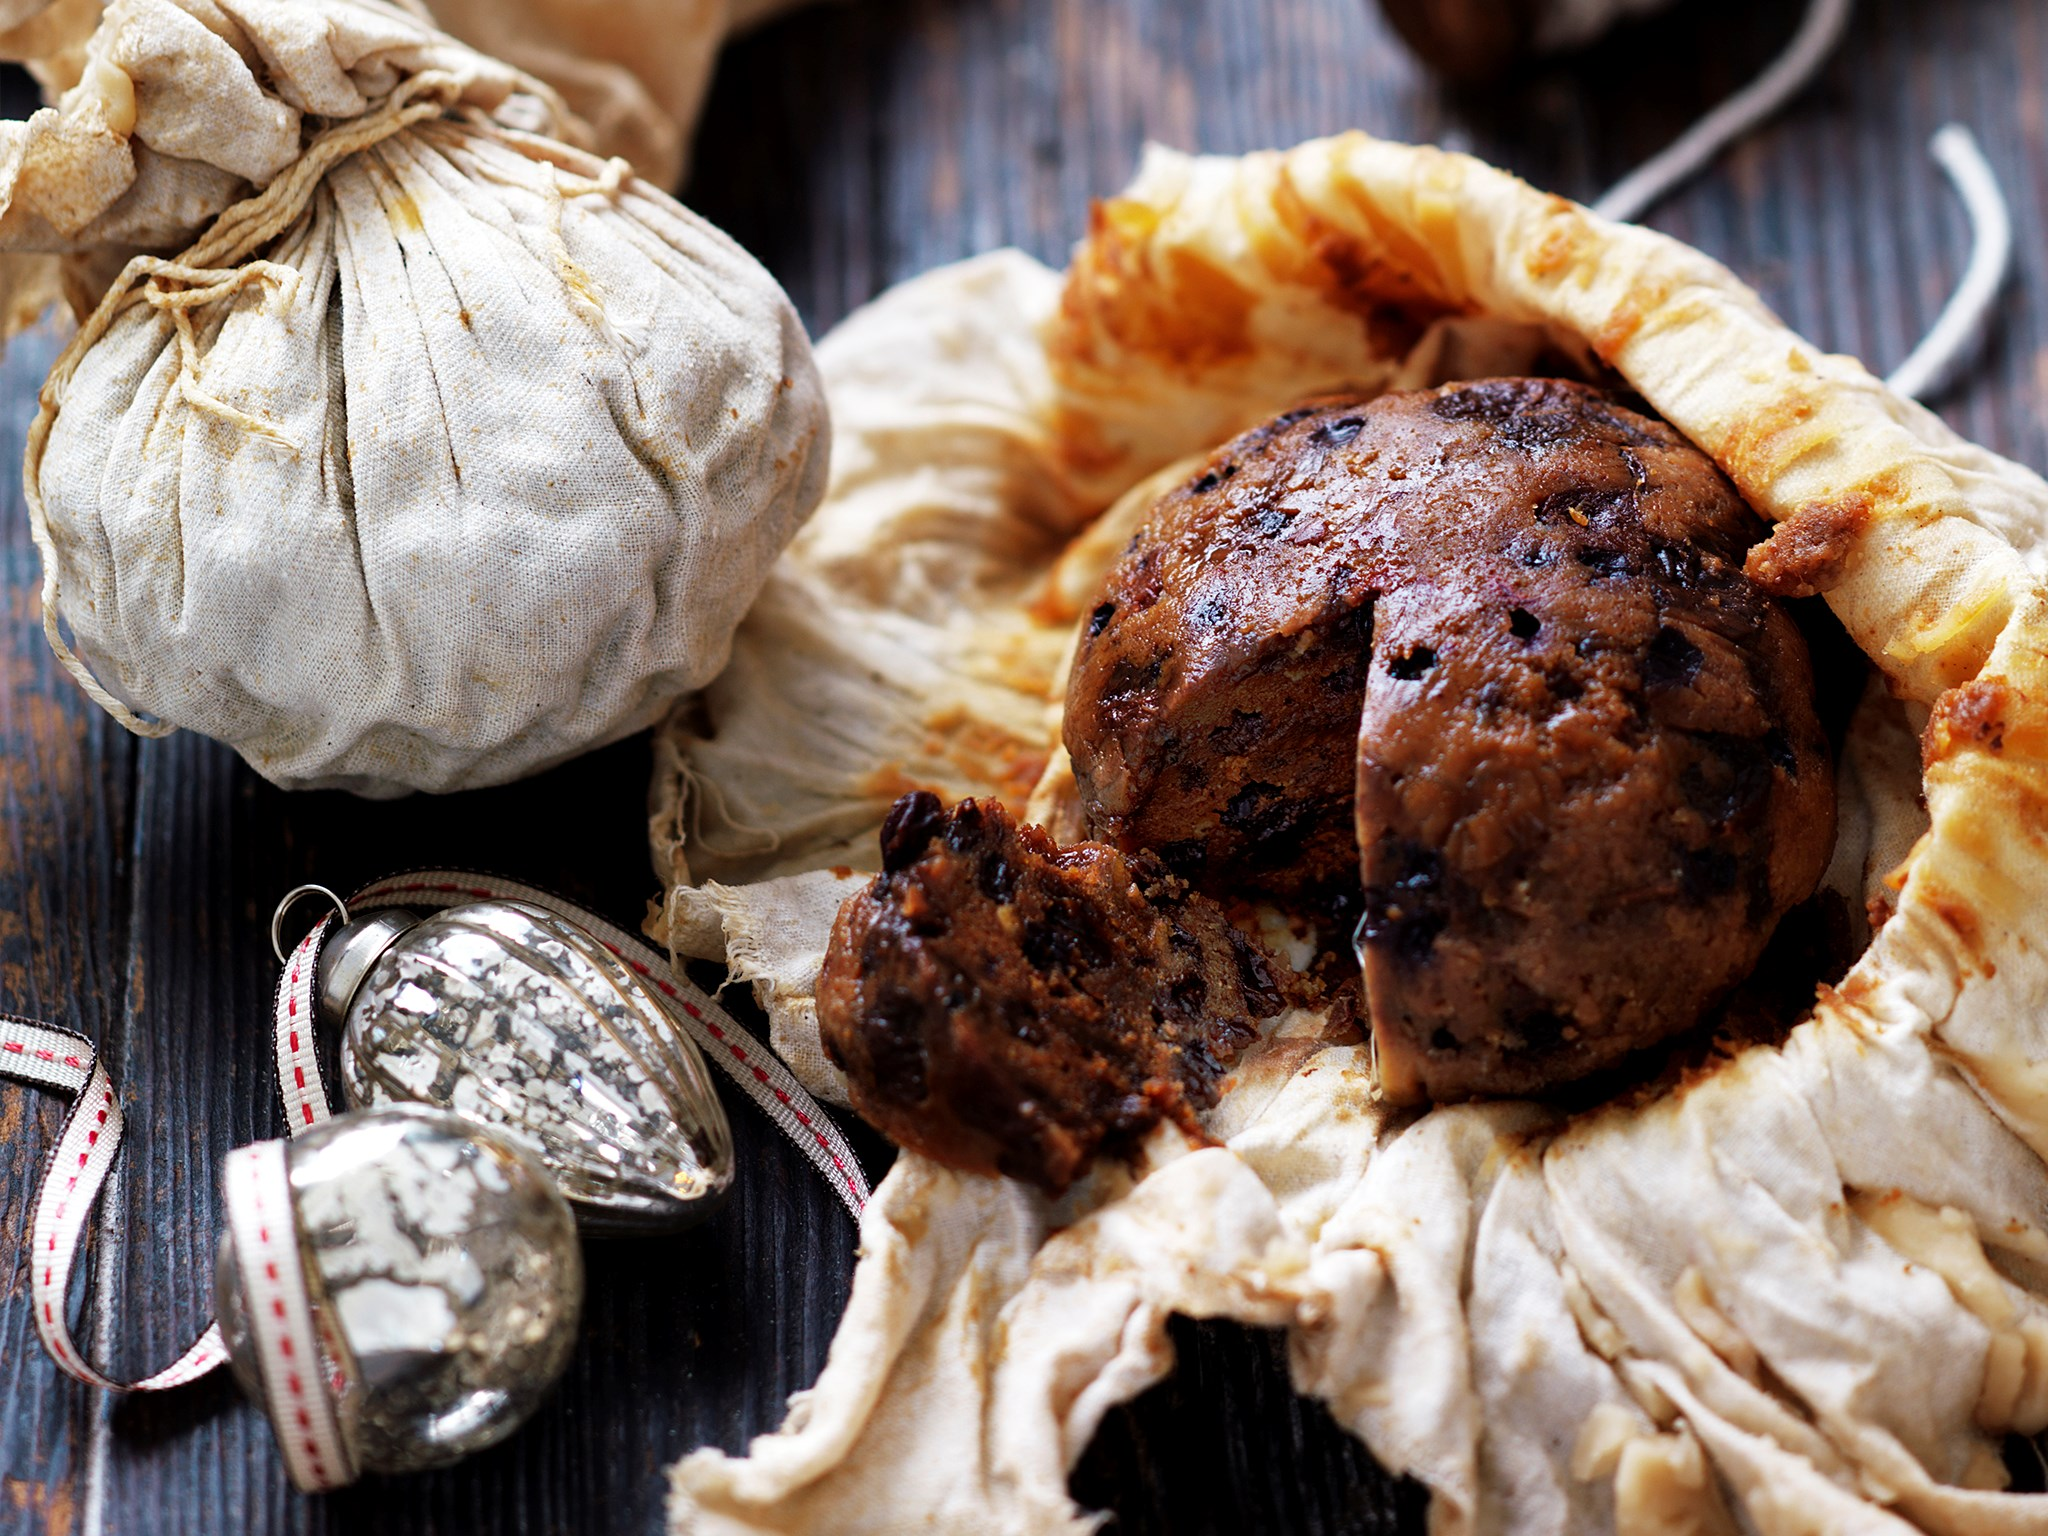 Prepare your Christmas cake or pud well in advance.